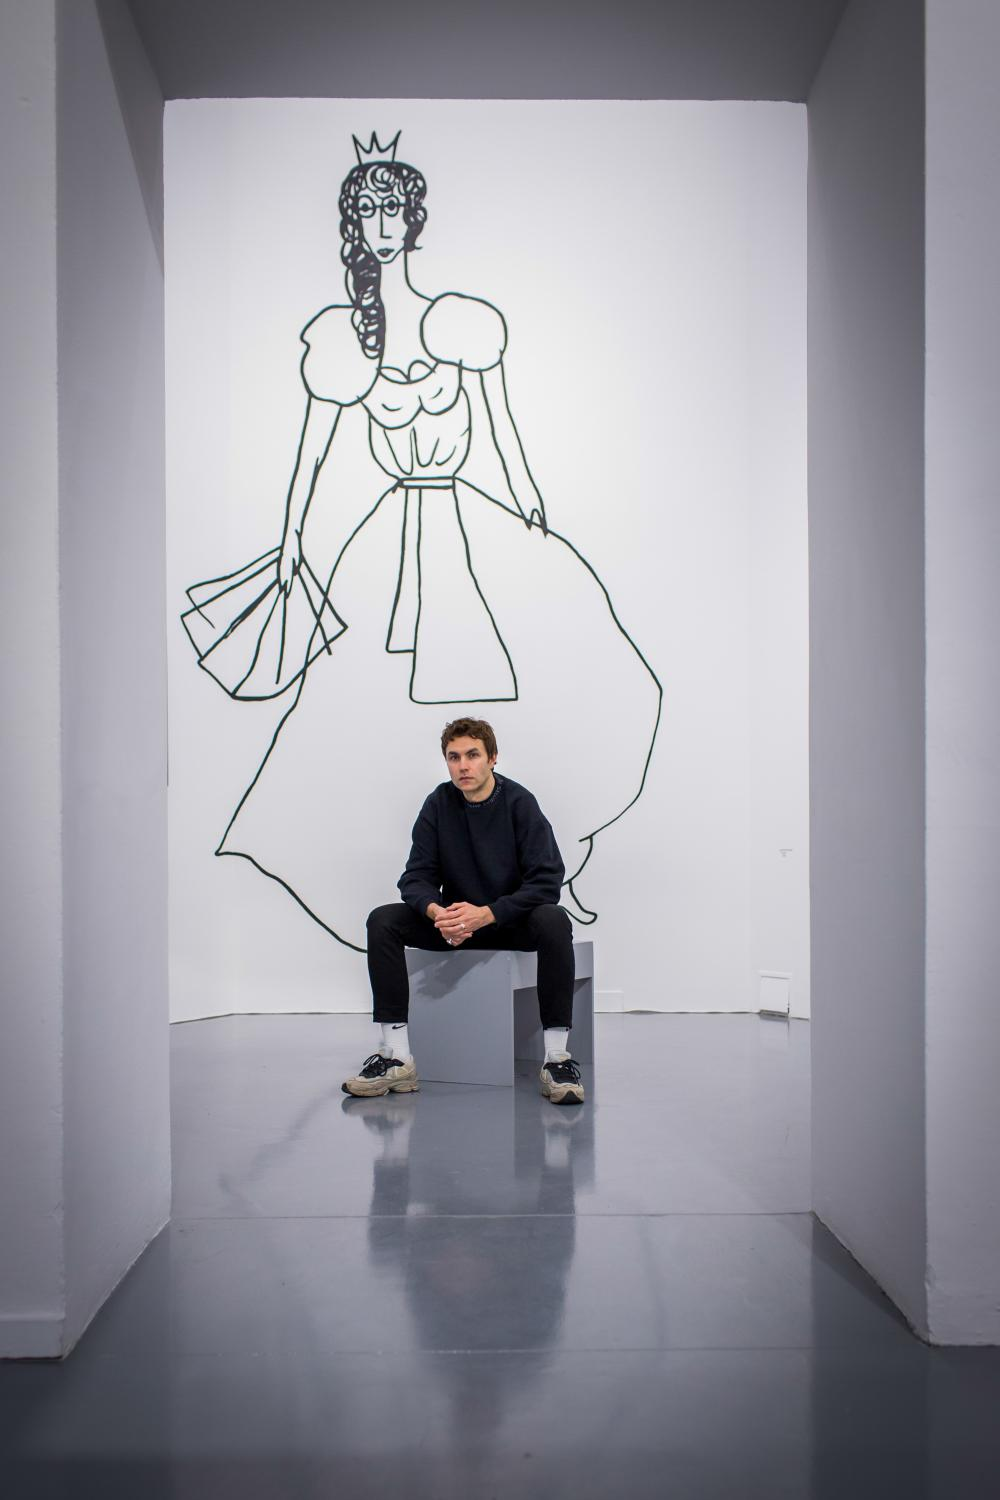 """Karol Radziszewski in front of a self-portait from his series """"1989,"""" in which the artist depicts himself as Cinderella, at the Ujazdowski Castle Center for Contemporary Art in Warsaw, Poland. A new director wants to reshape a leading Warsaw art space to show conservative works and challenge left-wing positions. Portrait for The New York Times"""